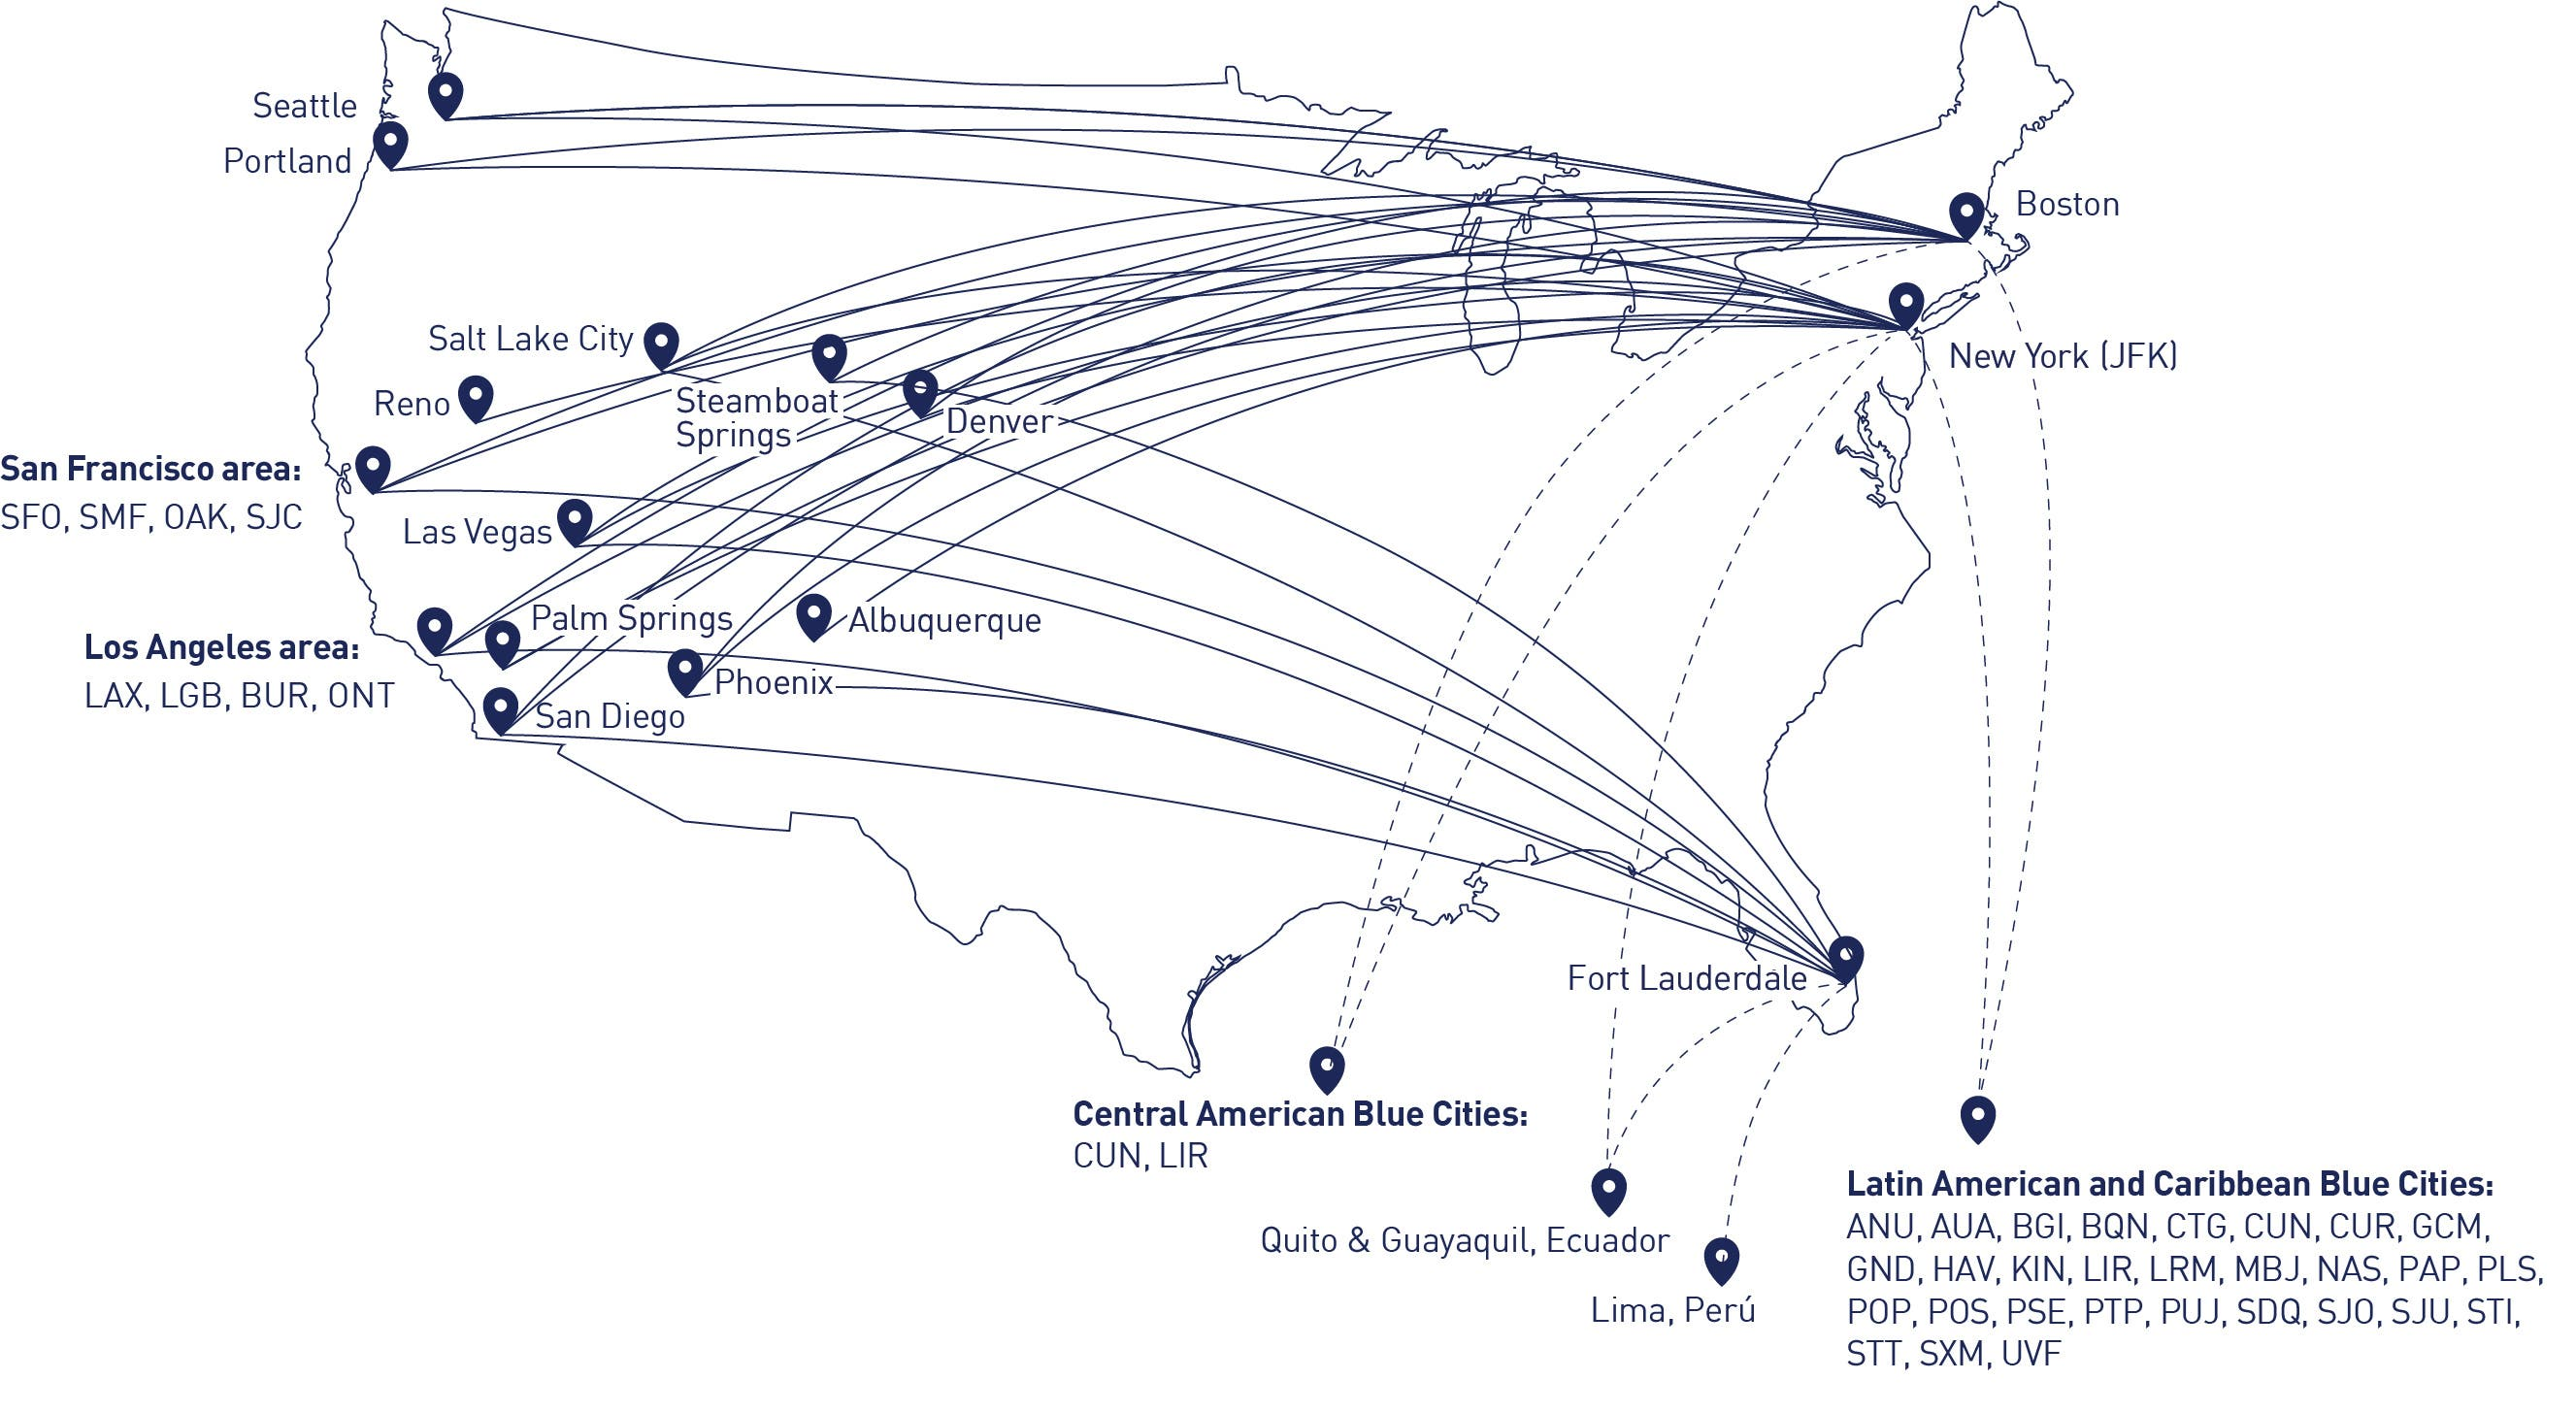 map of EatUp Café offerings on JetBlue flights